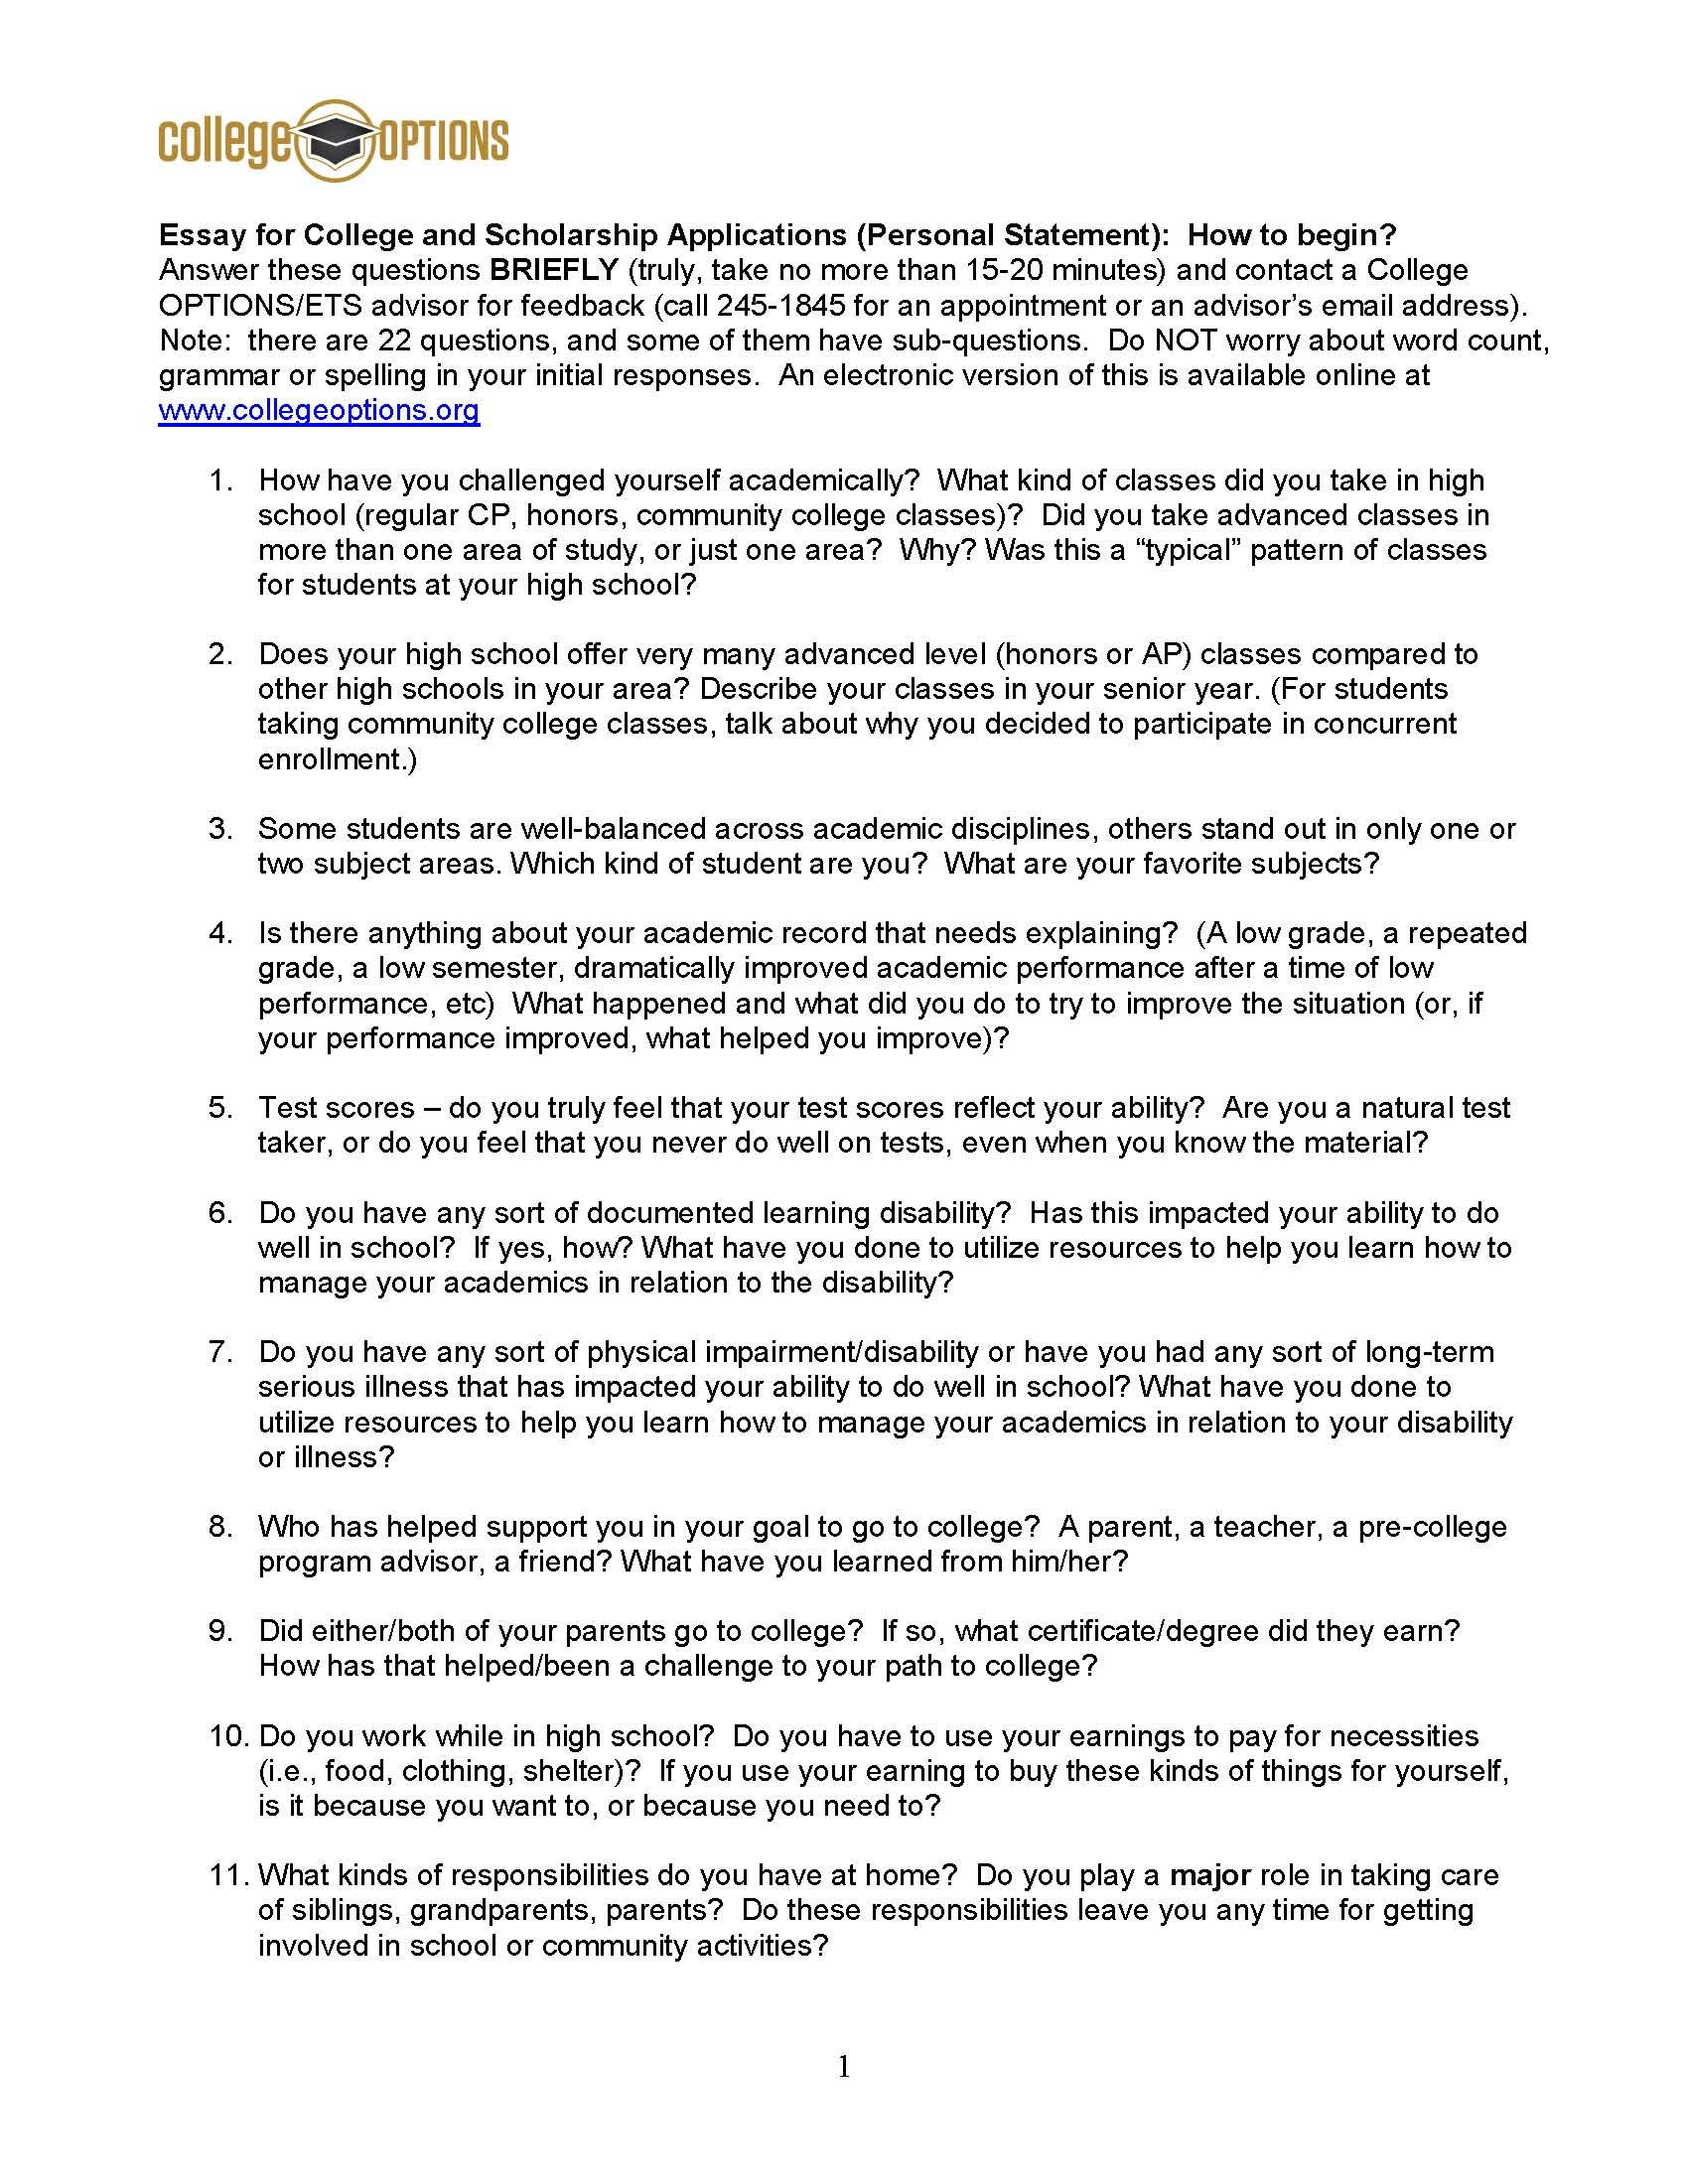 College options scholarship essay examples scholarships